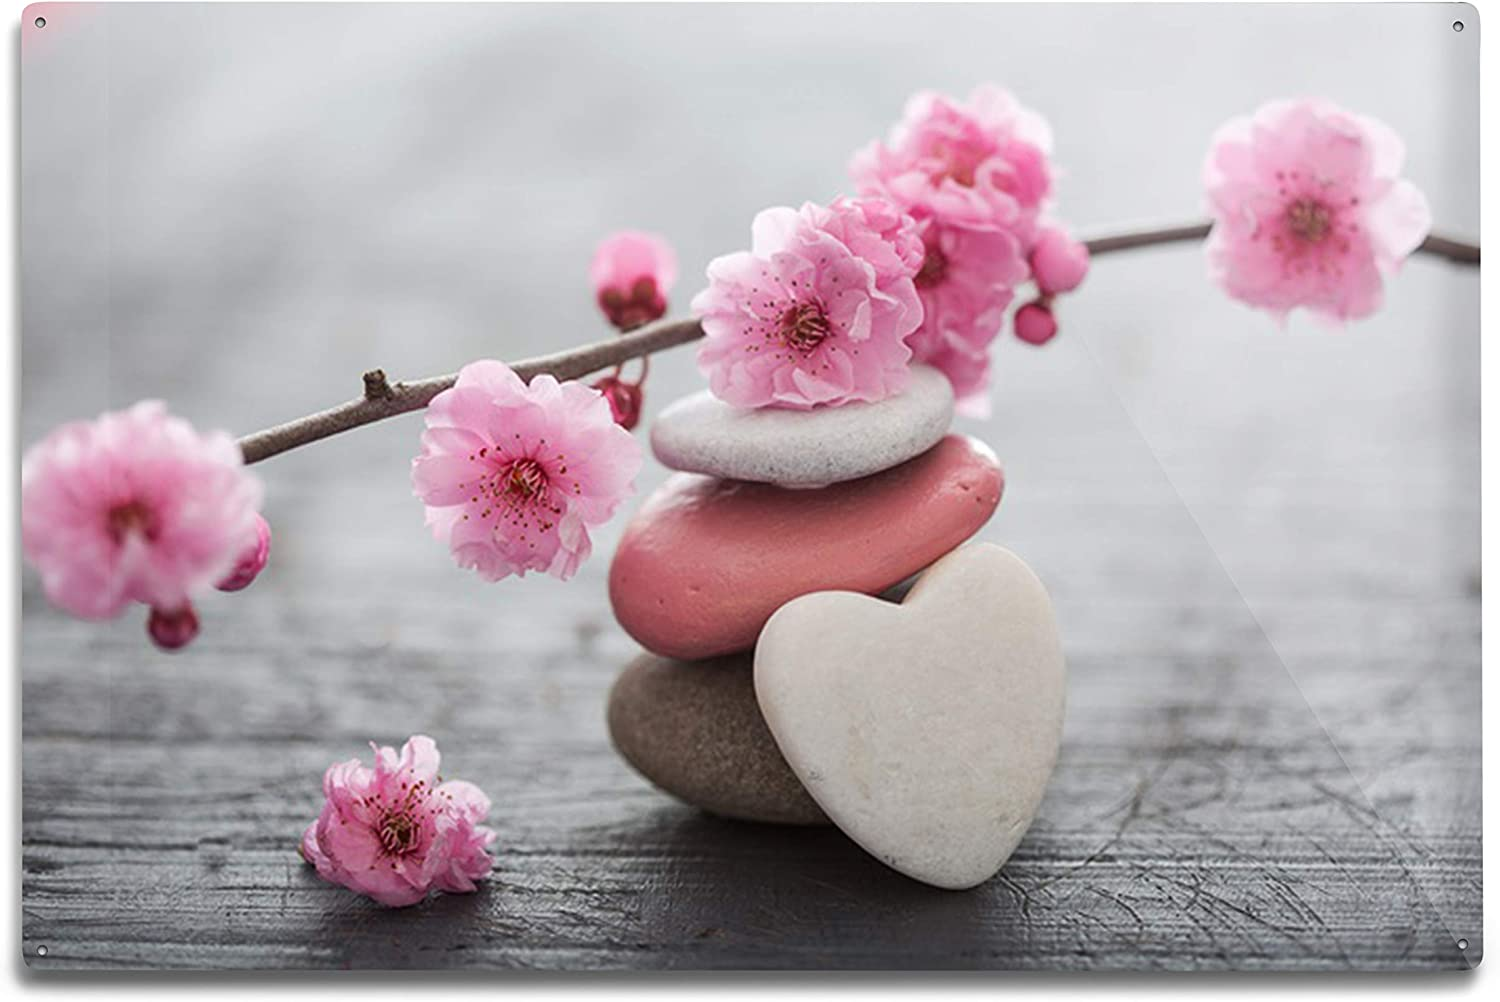 Lantern Press Zen Flowers and Stones overseas Ranking TOP11 Photography 12x18 A-93564